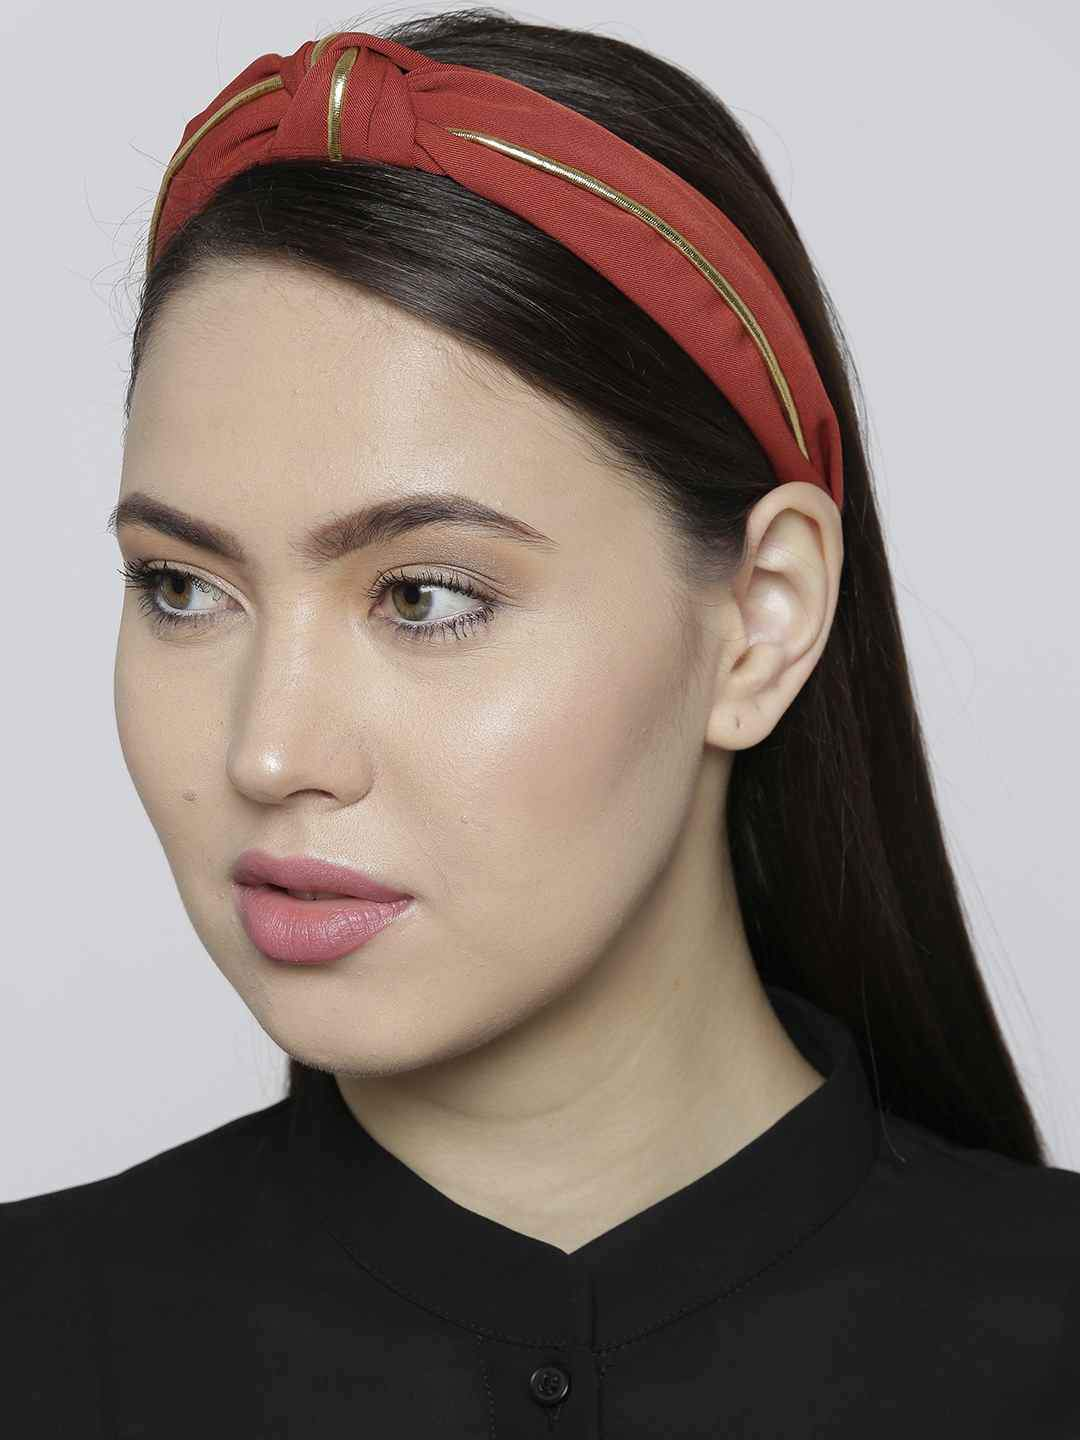 Bellofox Foiled Knot Headband Hair Accessories HA1030